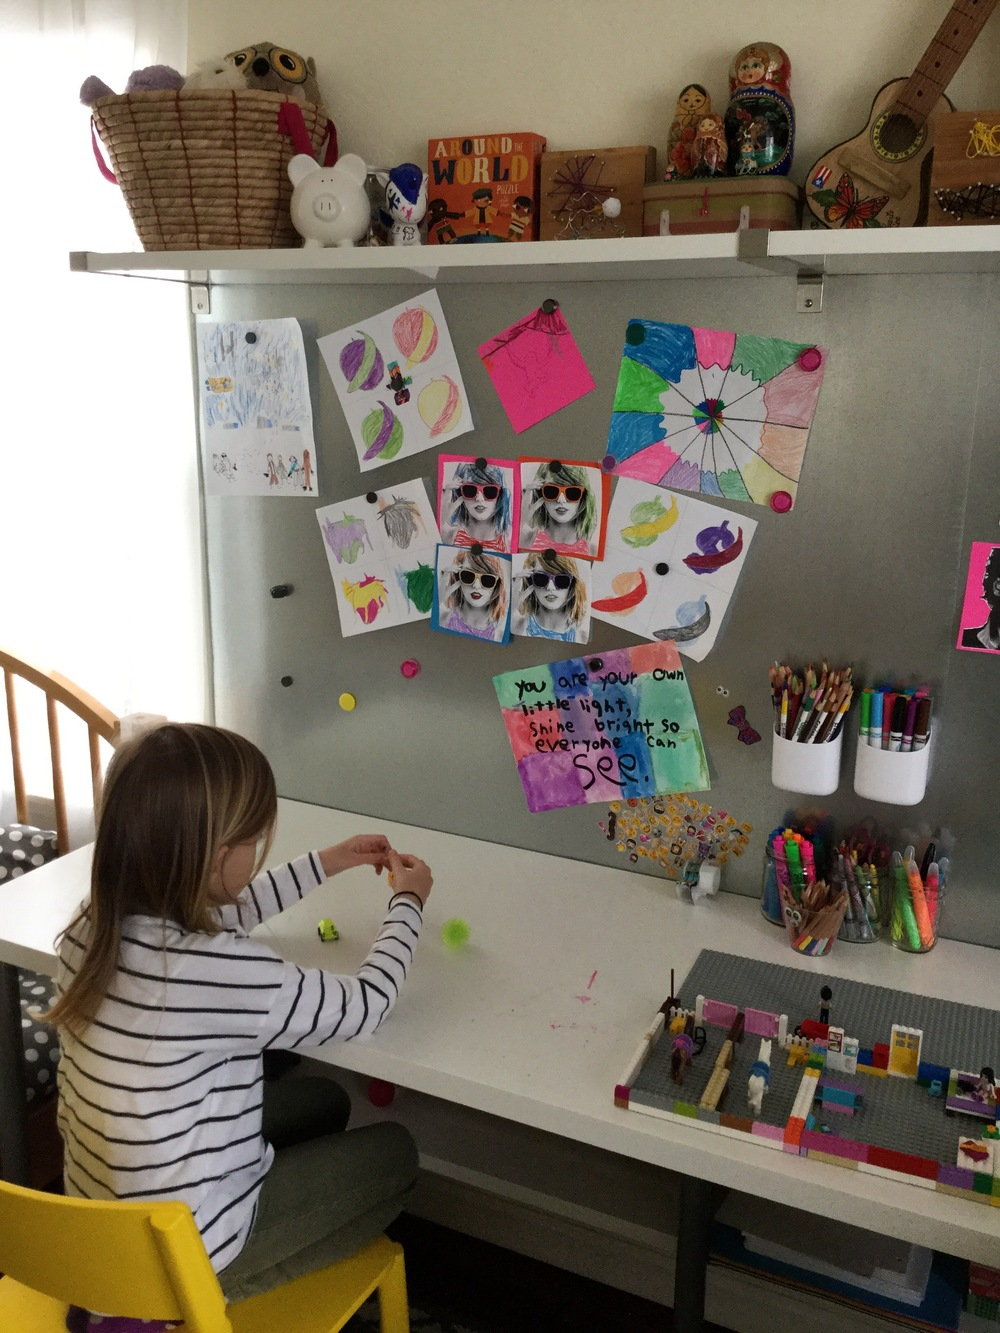 Olga shares some tips on ROOM-SHARING:     -Create individual spaces within their room. It's such an important part of development for kids to have their own designated space, it takes a little more creativity when the room is shared but can definitely be done.